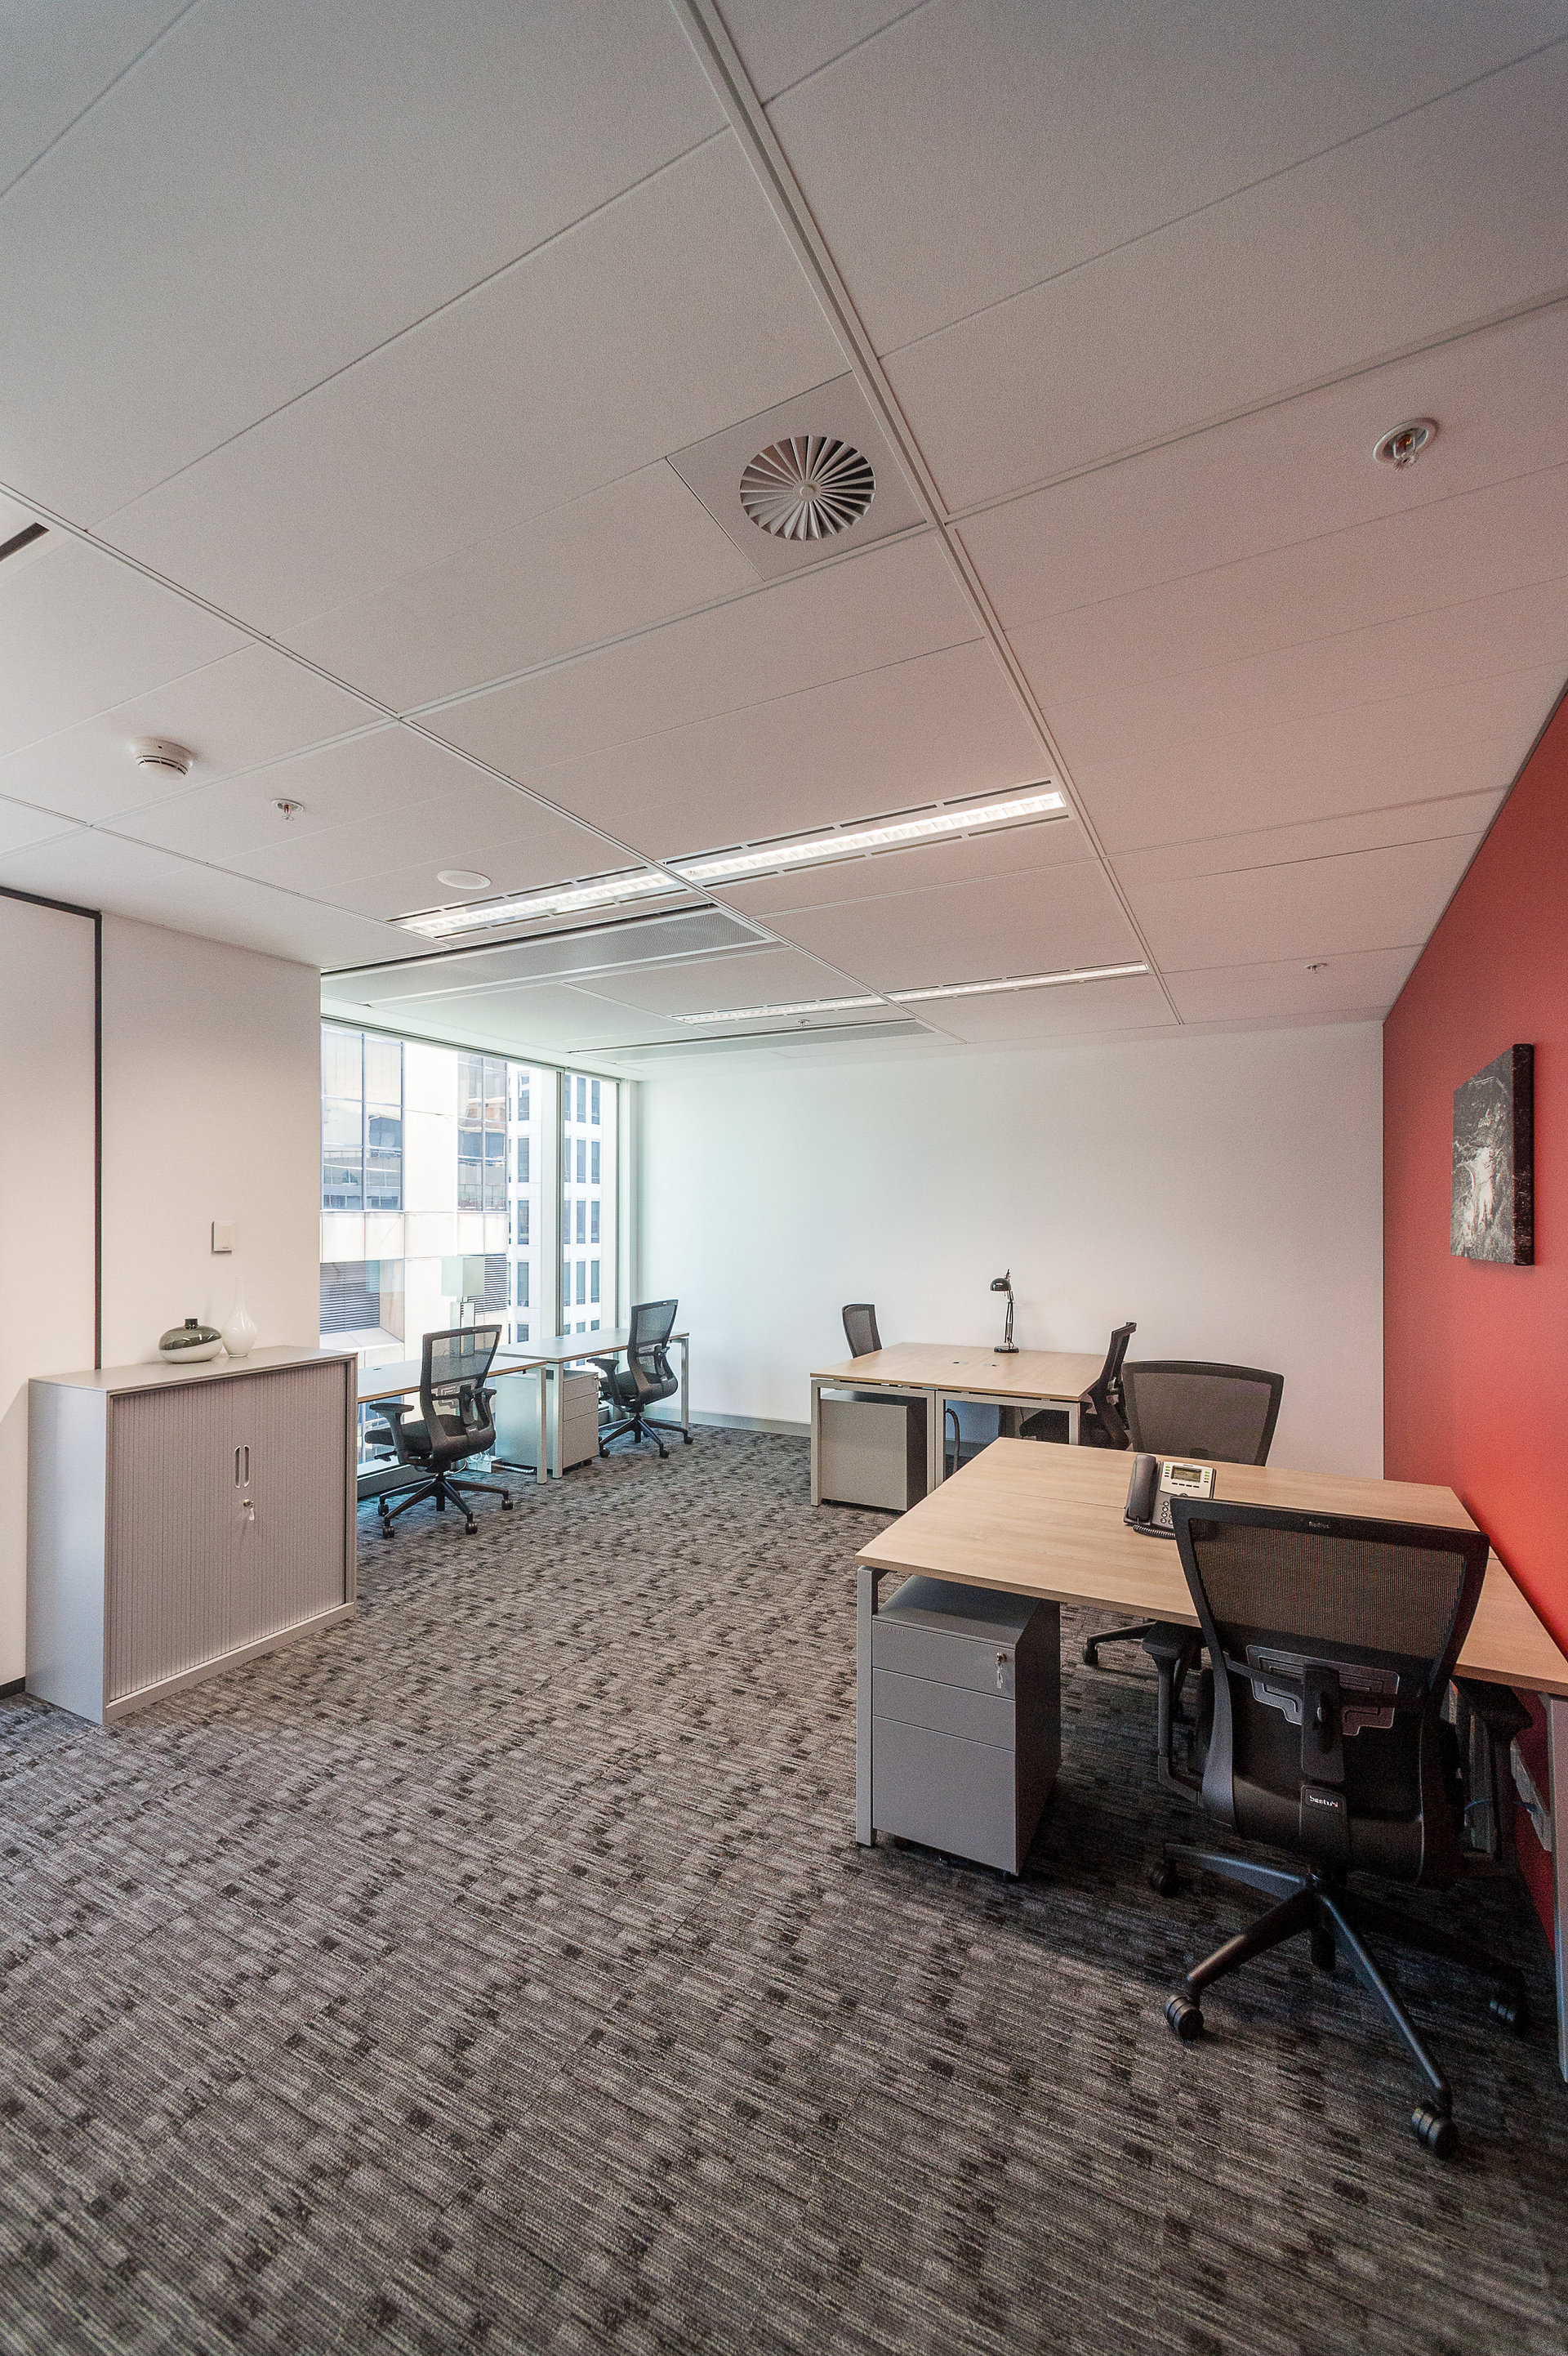 Premium office spaces available soon. Enquire today to find out more!